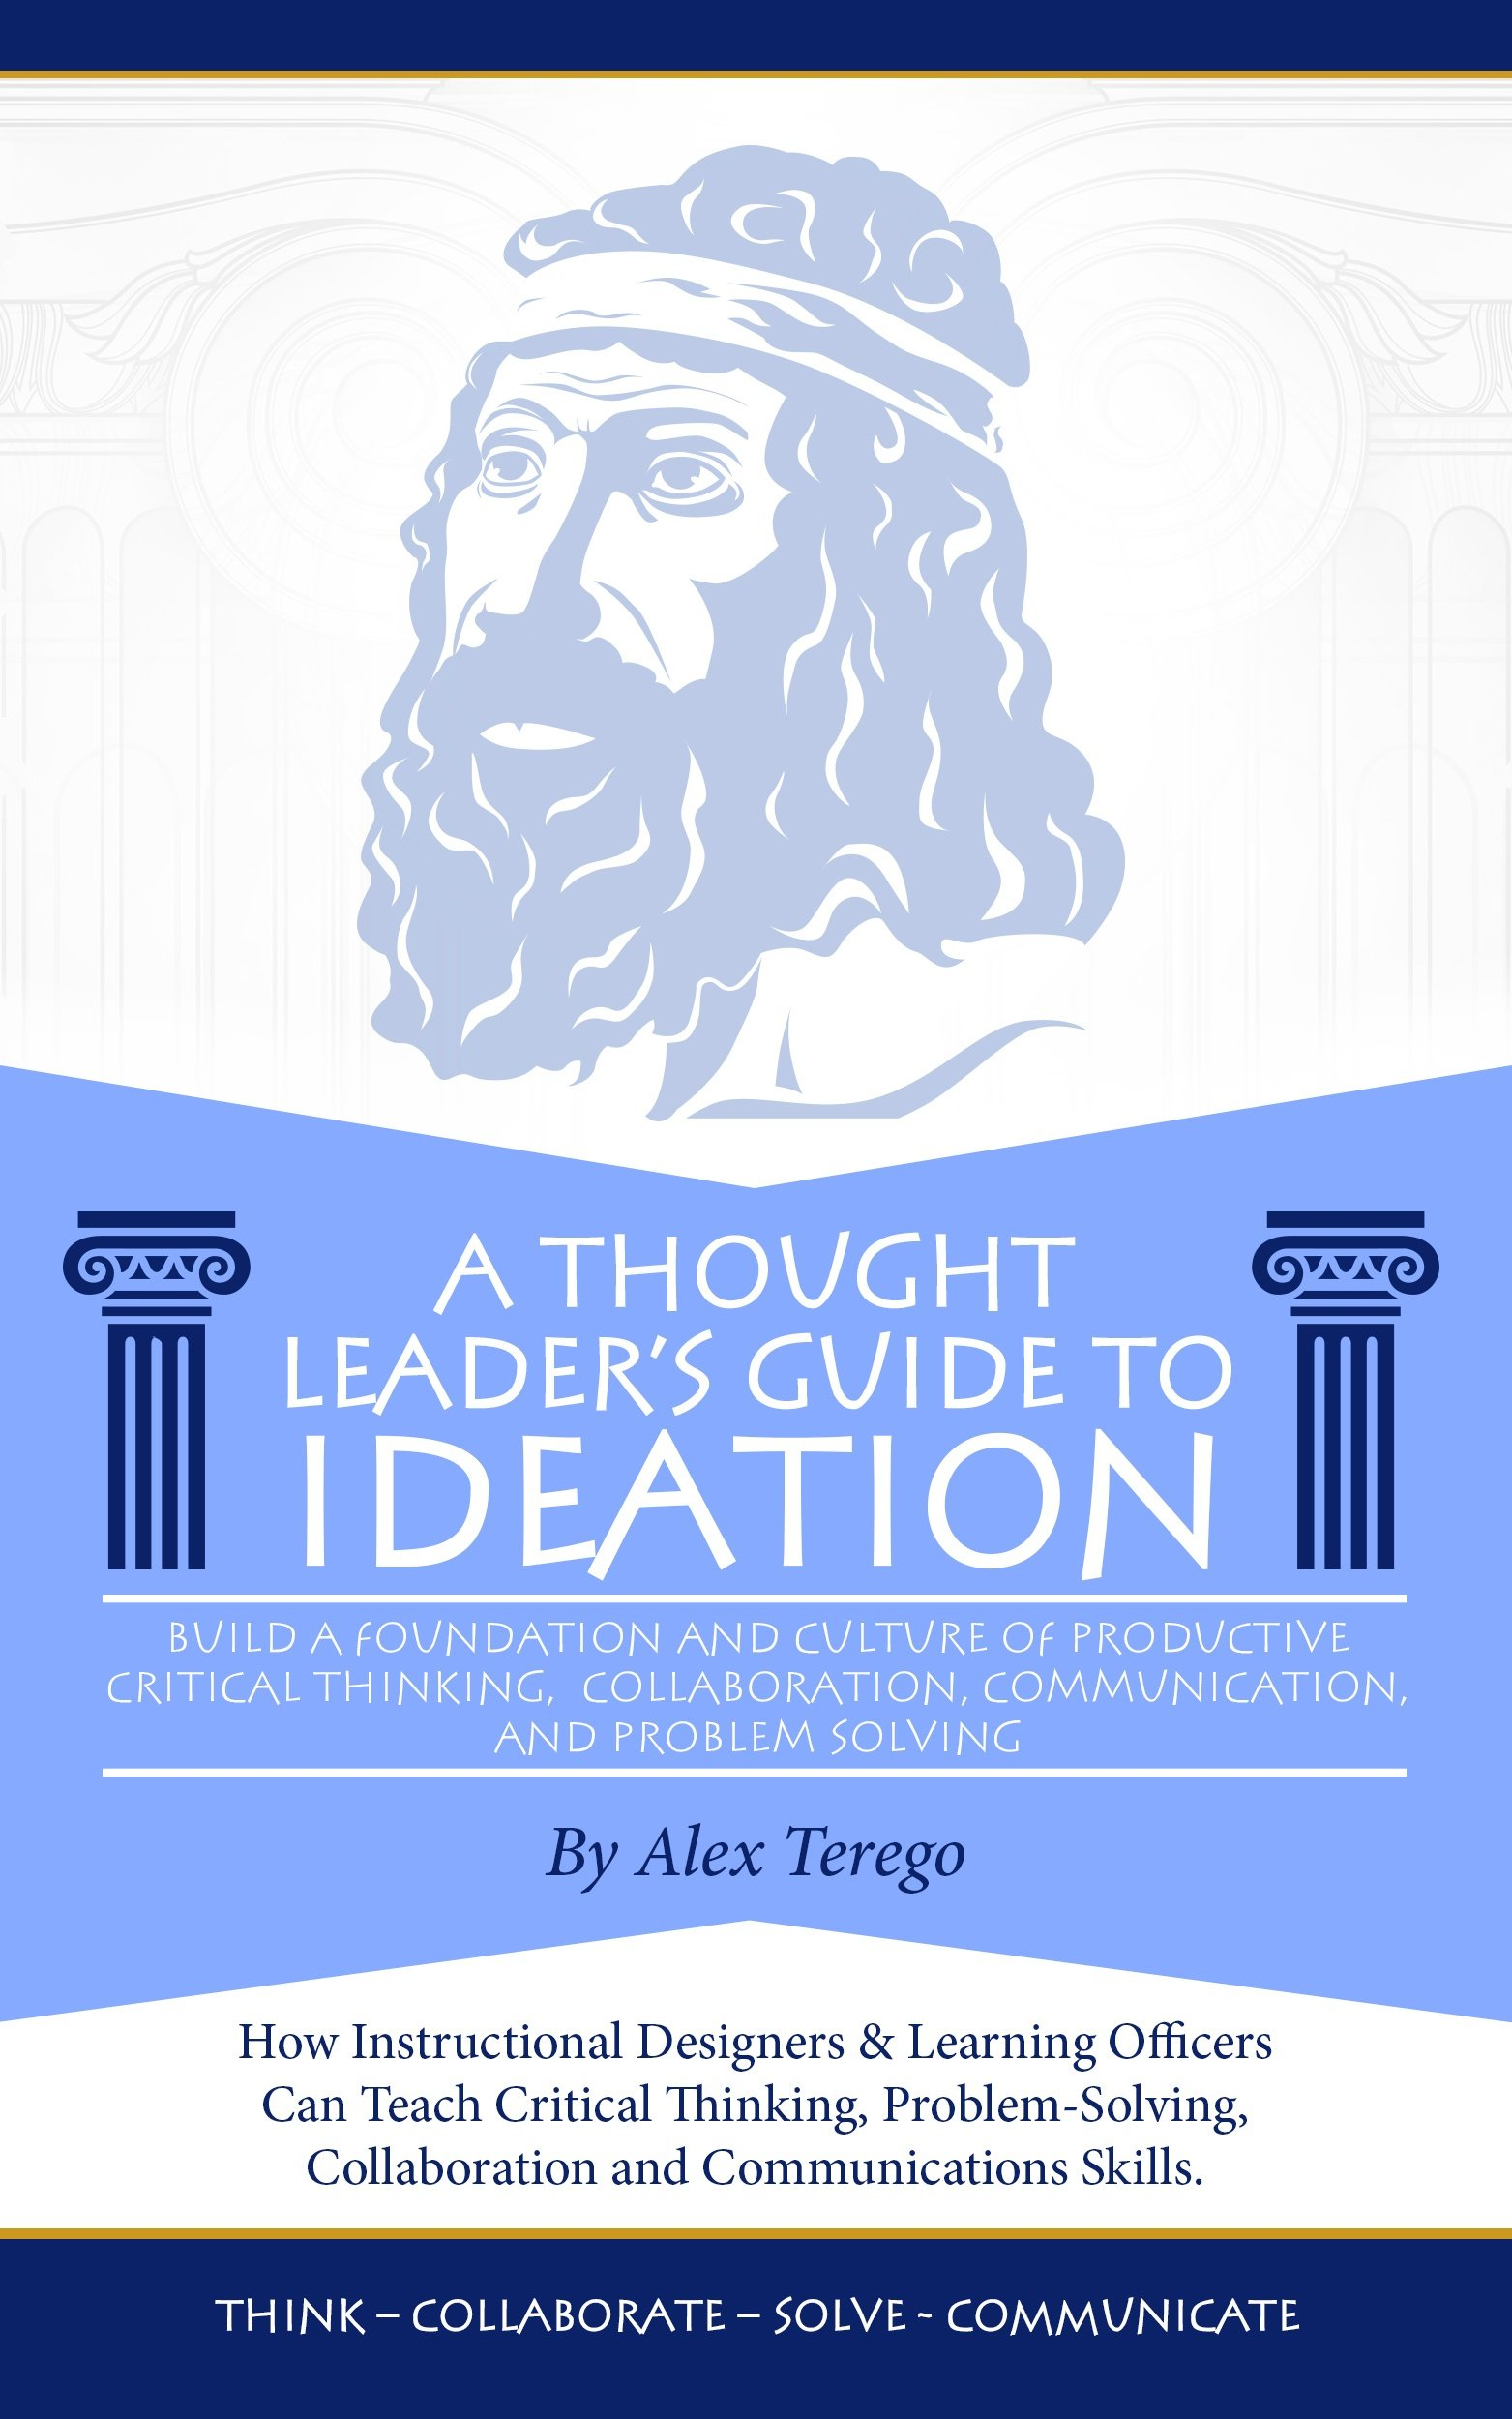 Free Ebook: A Thought Leader's Guide to Ideation: Build a Foundation and Culture of Productive Critical-Thinking, Collaboration, Communication, and Problem-Solving